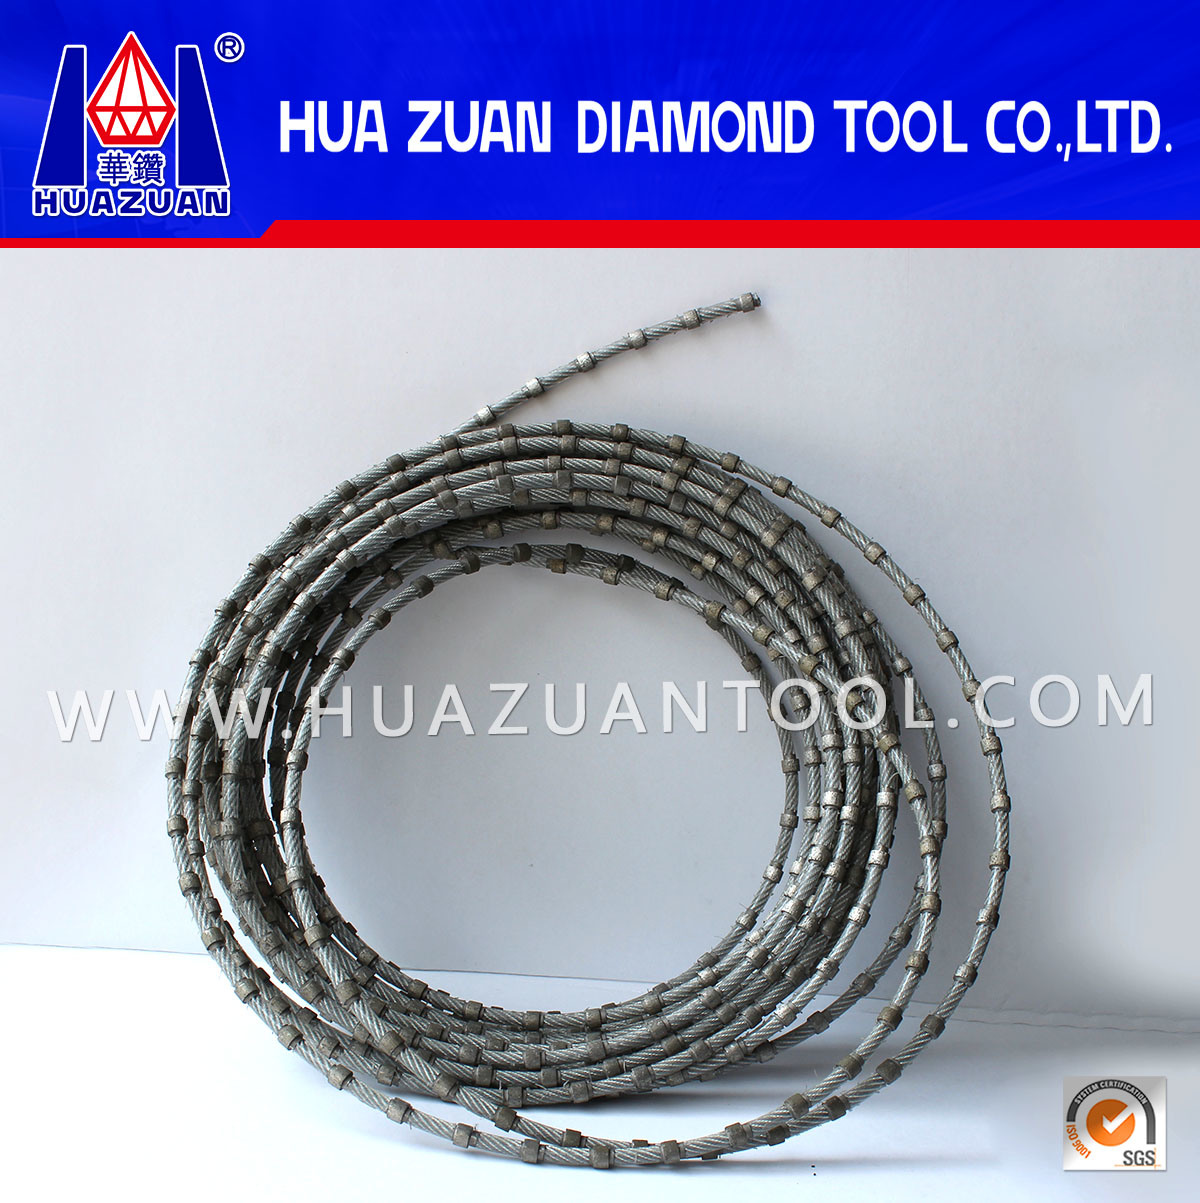 China Diamond Wire Saw for Stone Cutting in The World - China ...